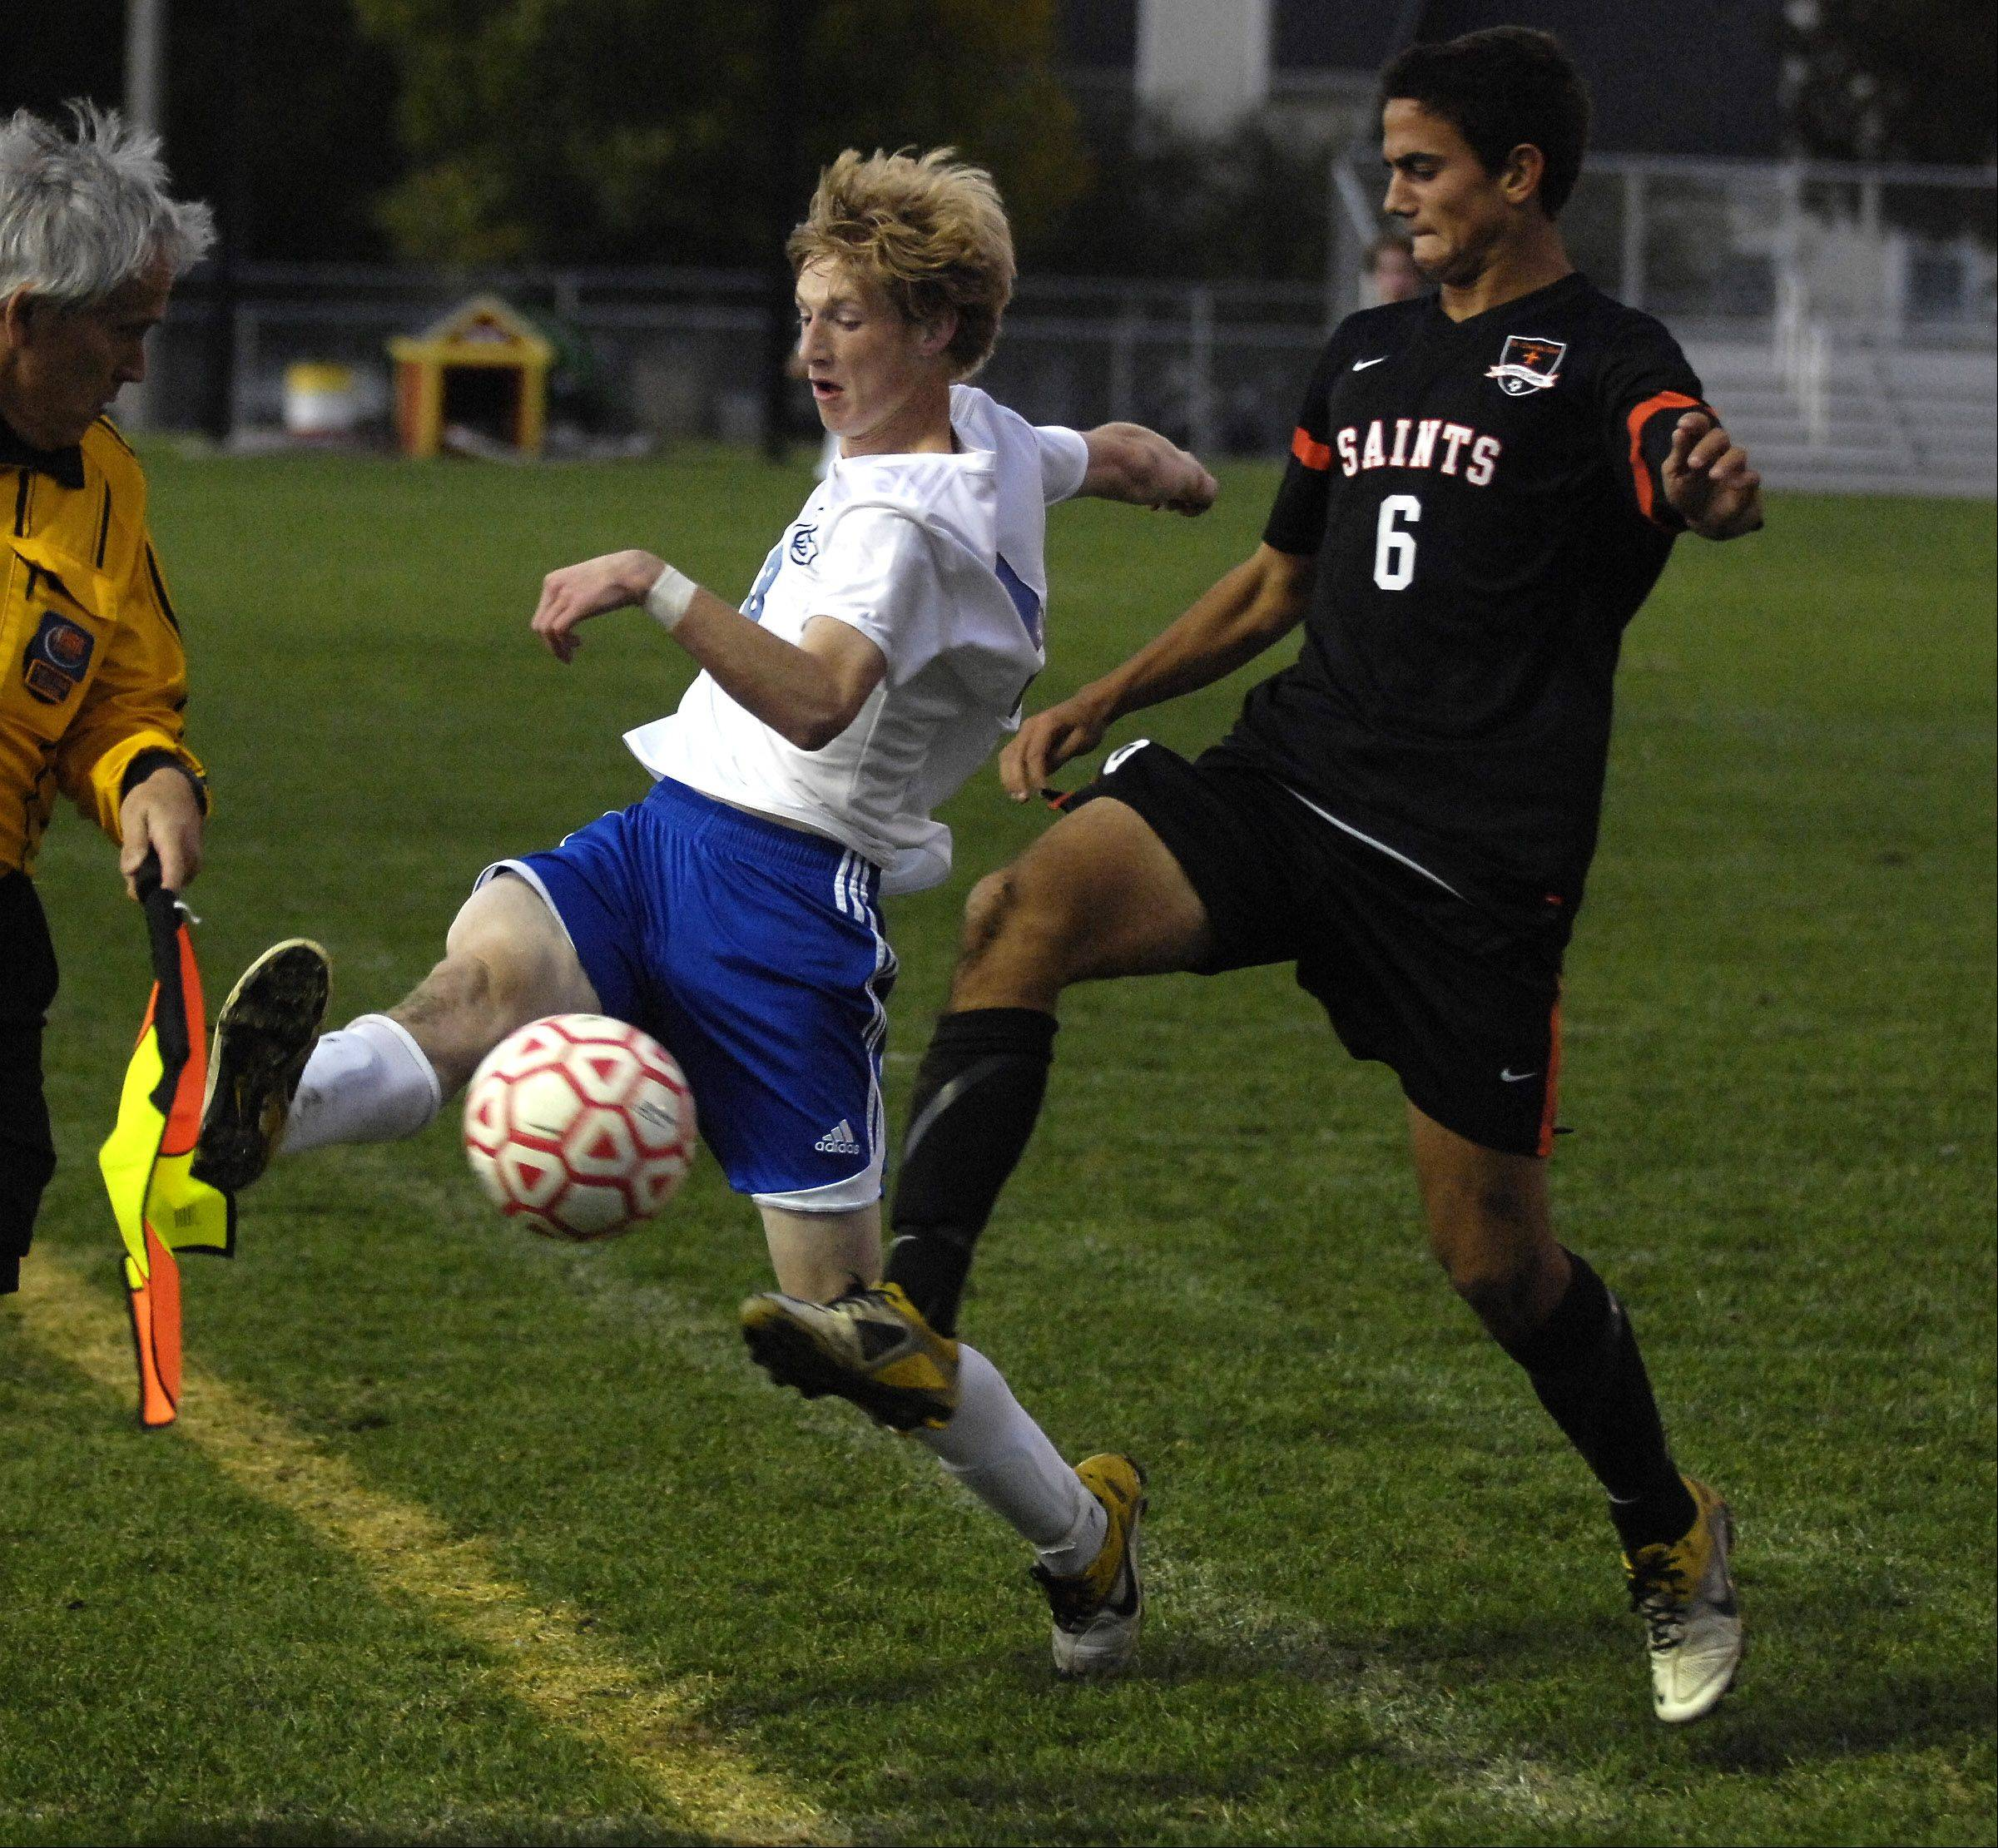 Geneva�s David Goodyear tries to keep the ball in play along the sideline as St. Charles East�s Michael Macek pressures during the Tri-Cities soccer challenge hosted by Batavia High School Thursday.